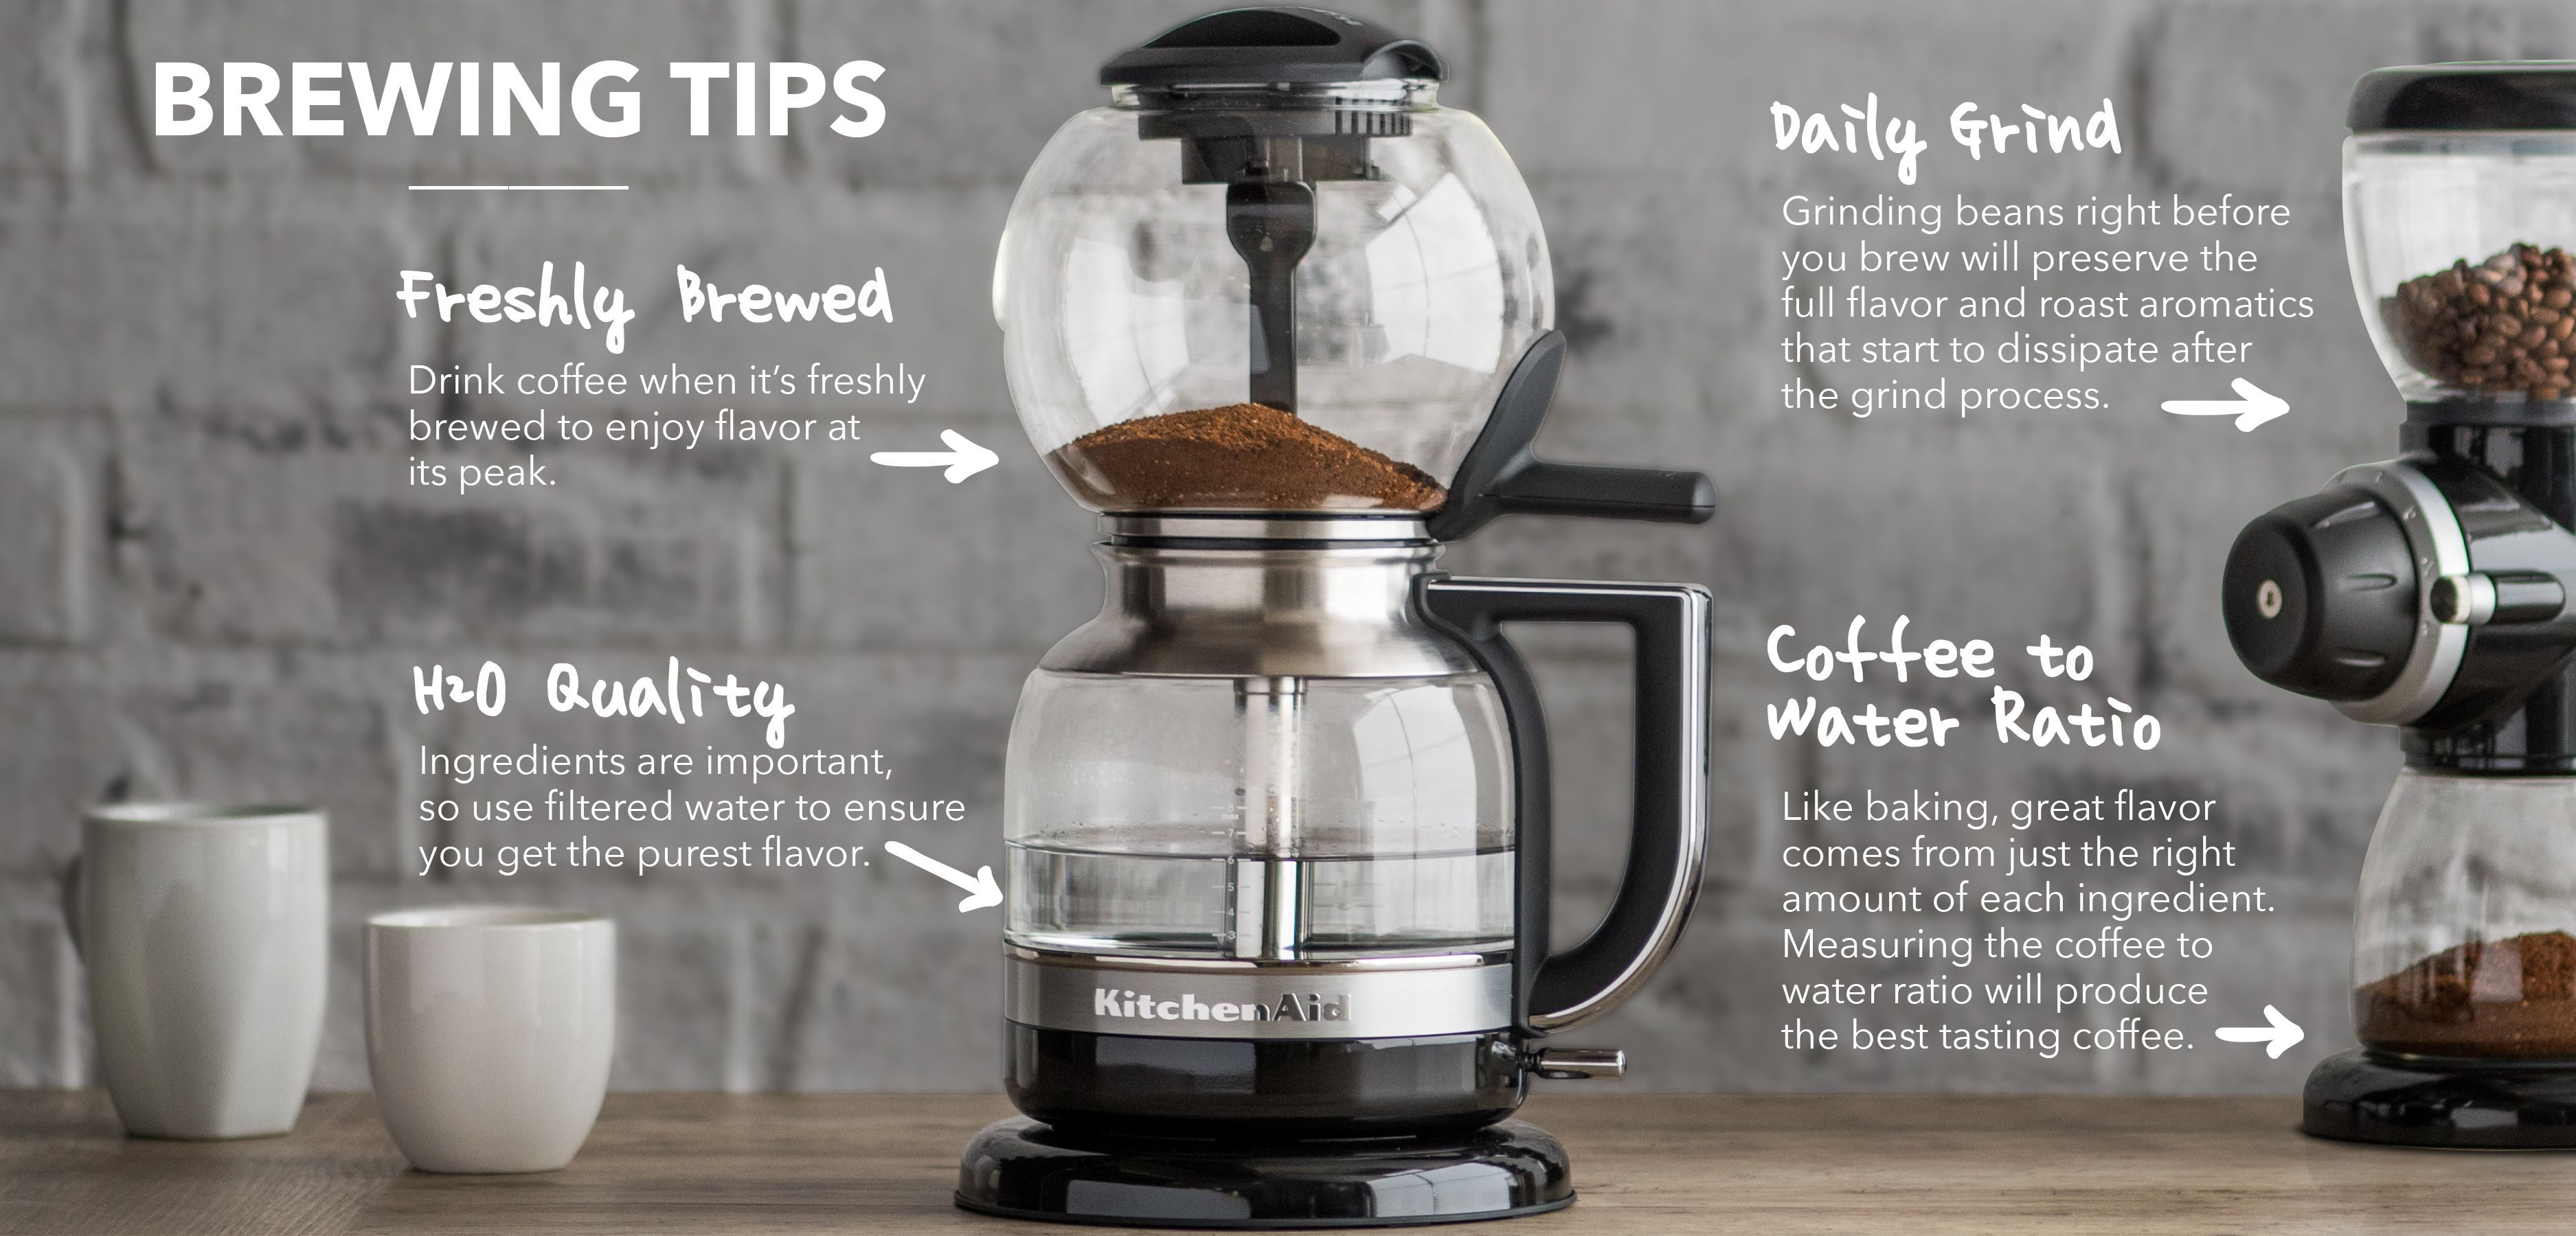 Brewing tips for the new kitchenaid siphon coffee brewer